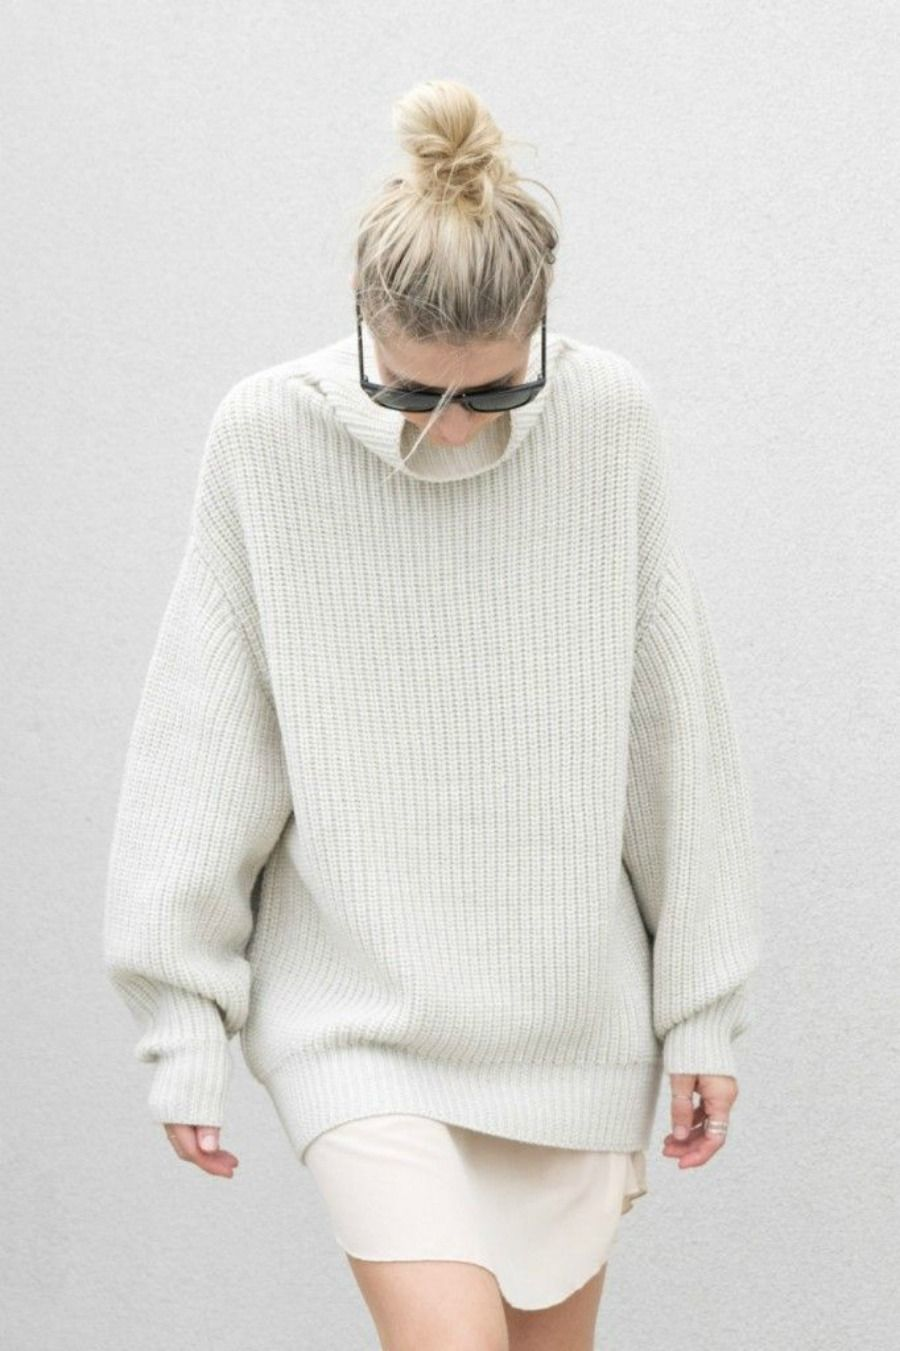 Currently Considering…autumnal whites